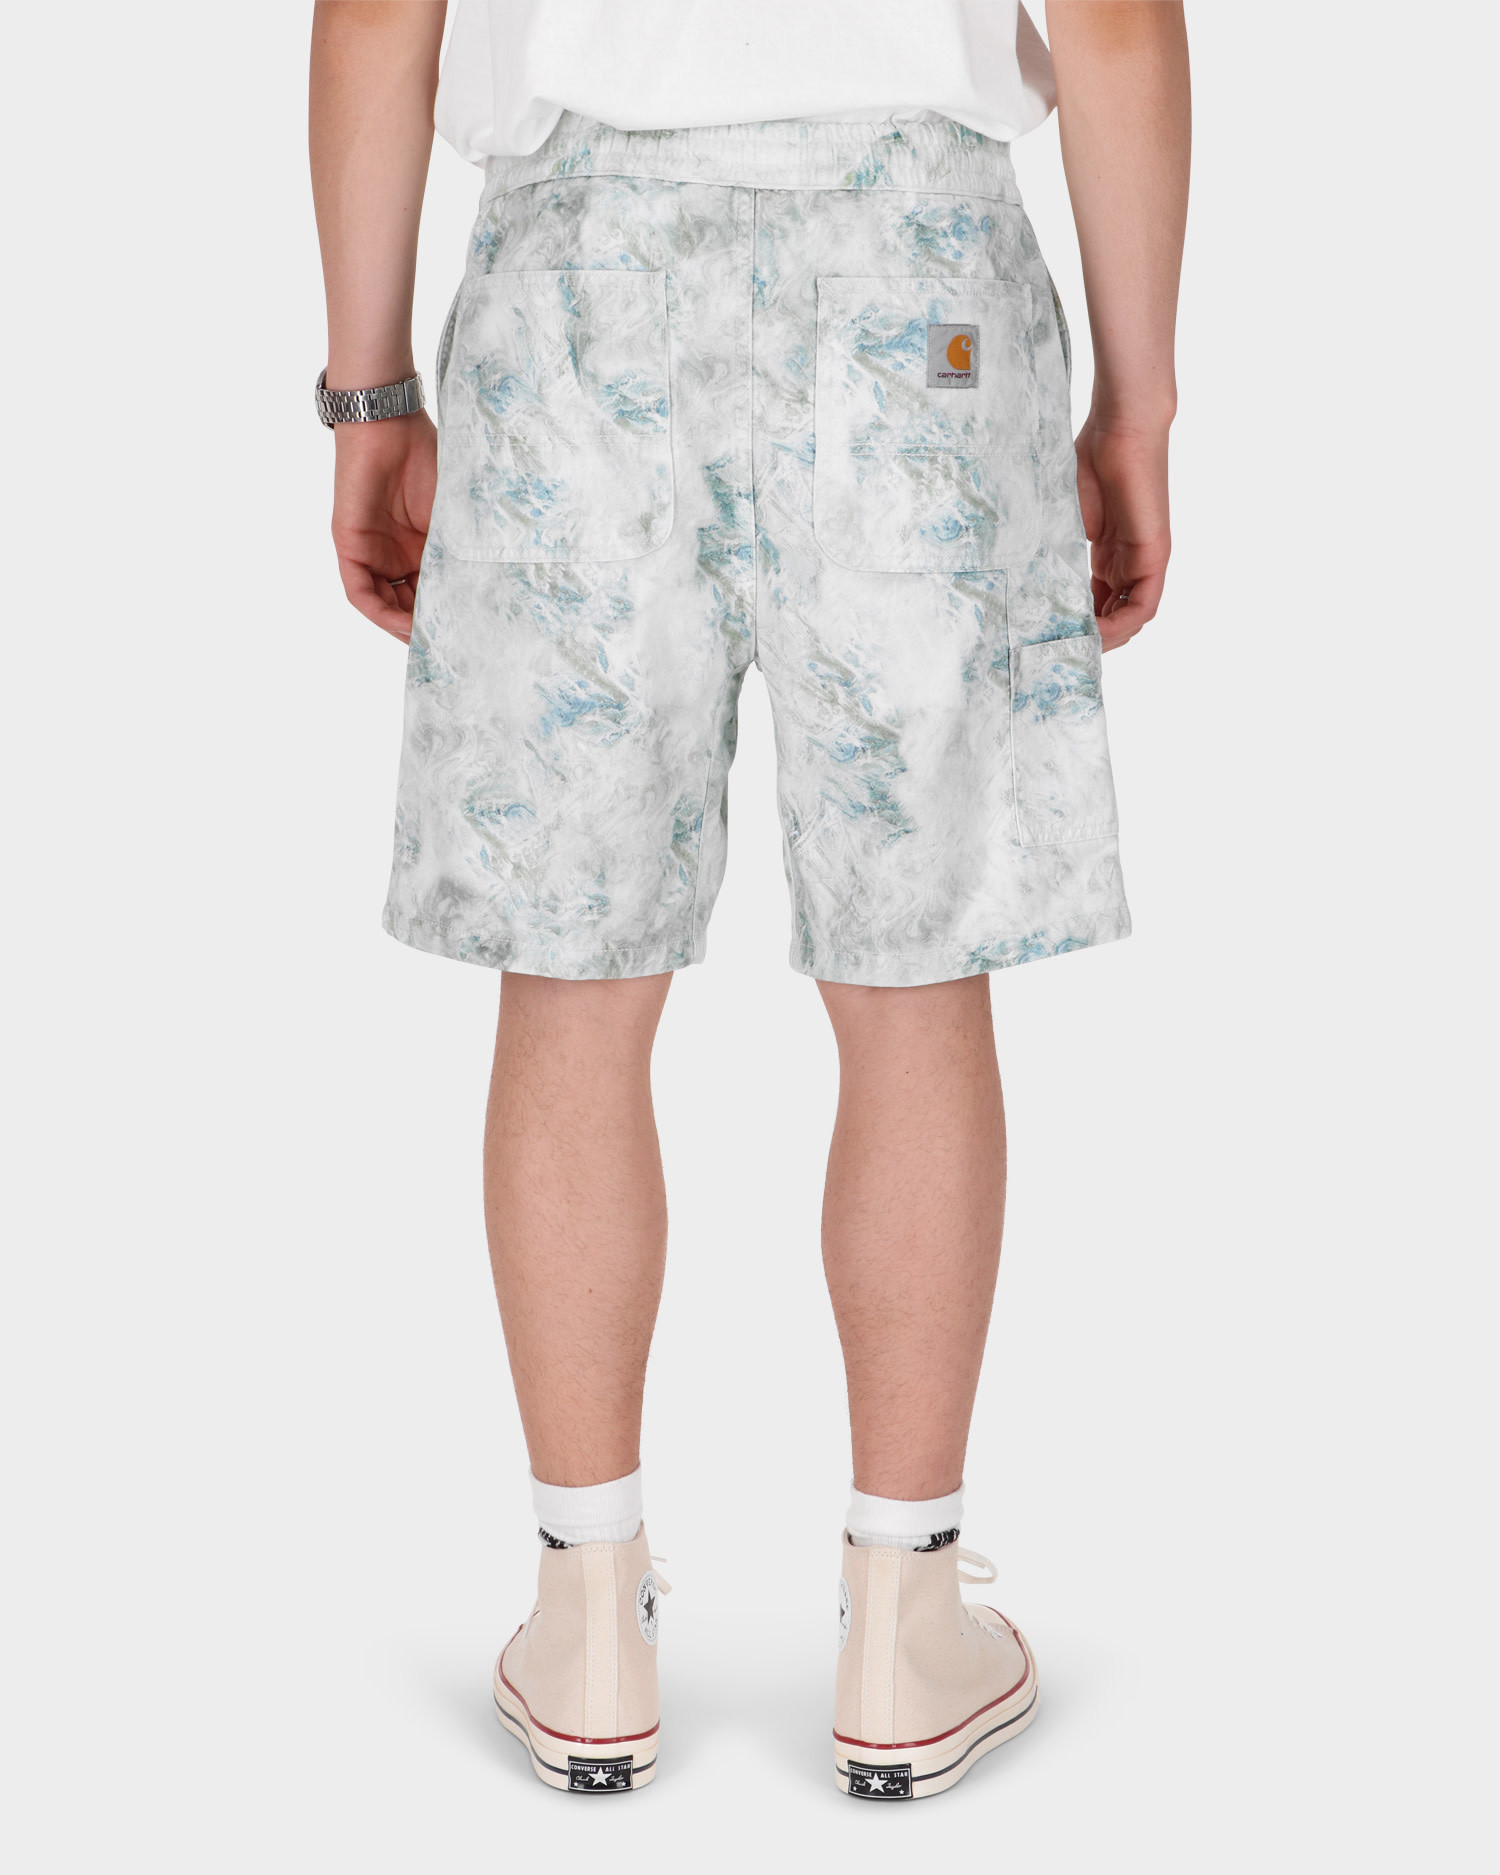 Carhartt Marble Shorts Marble Print Wave Stone Washed